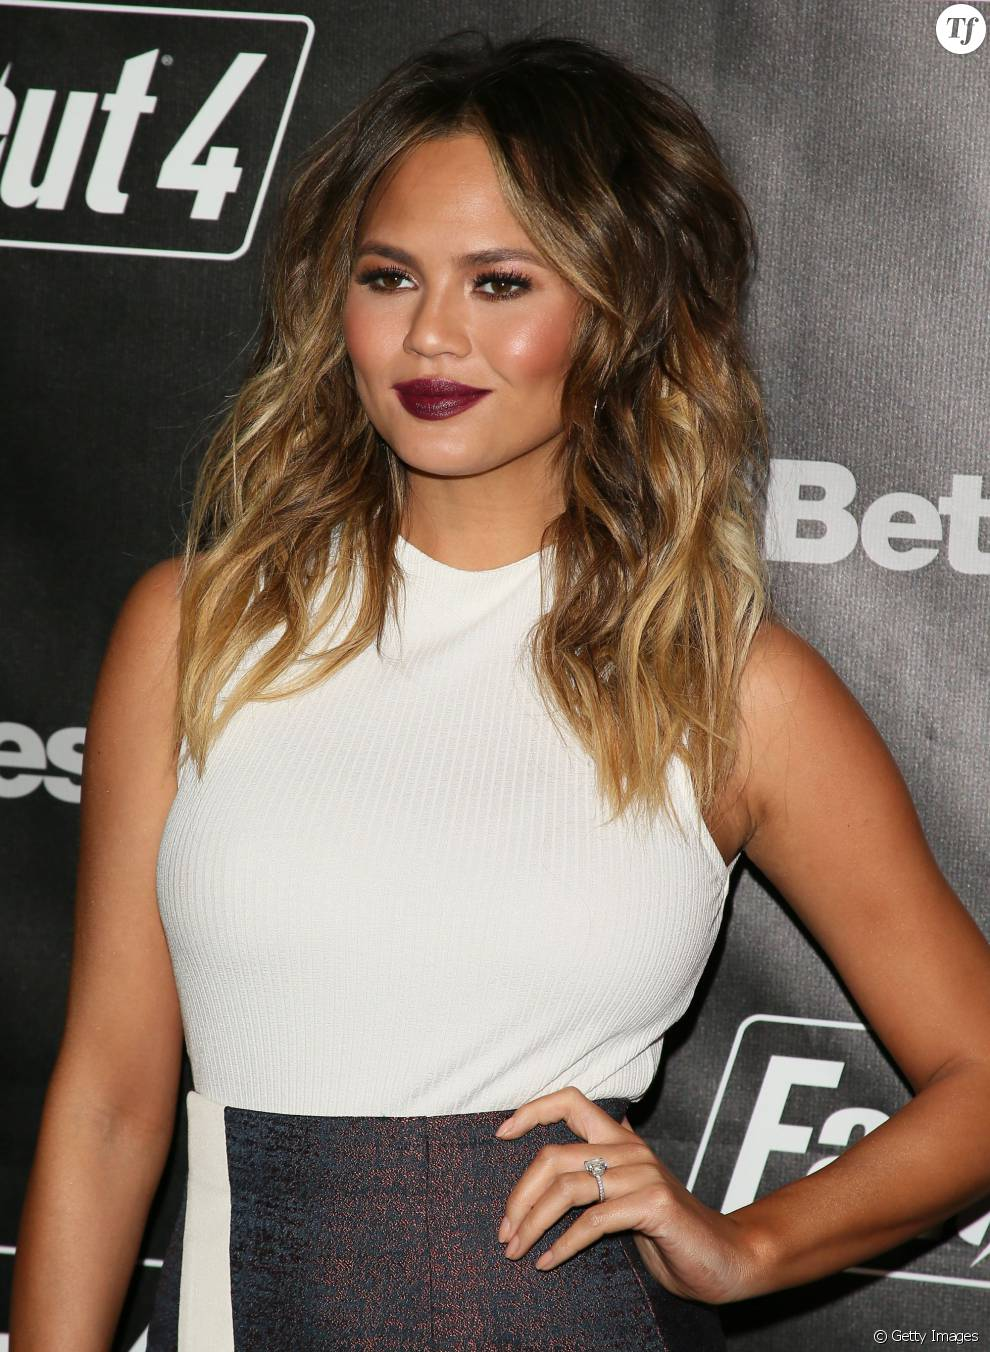 tendance blond chrissy teigen et sa coloration bronde - Coloration Bronde